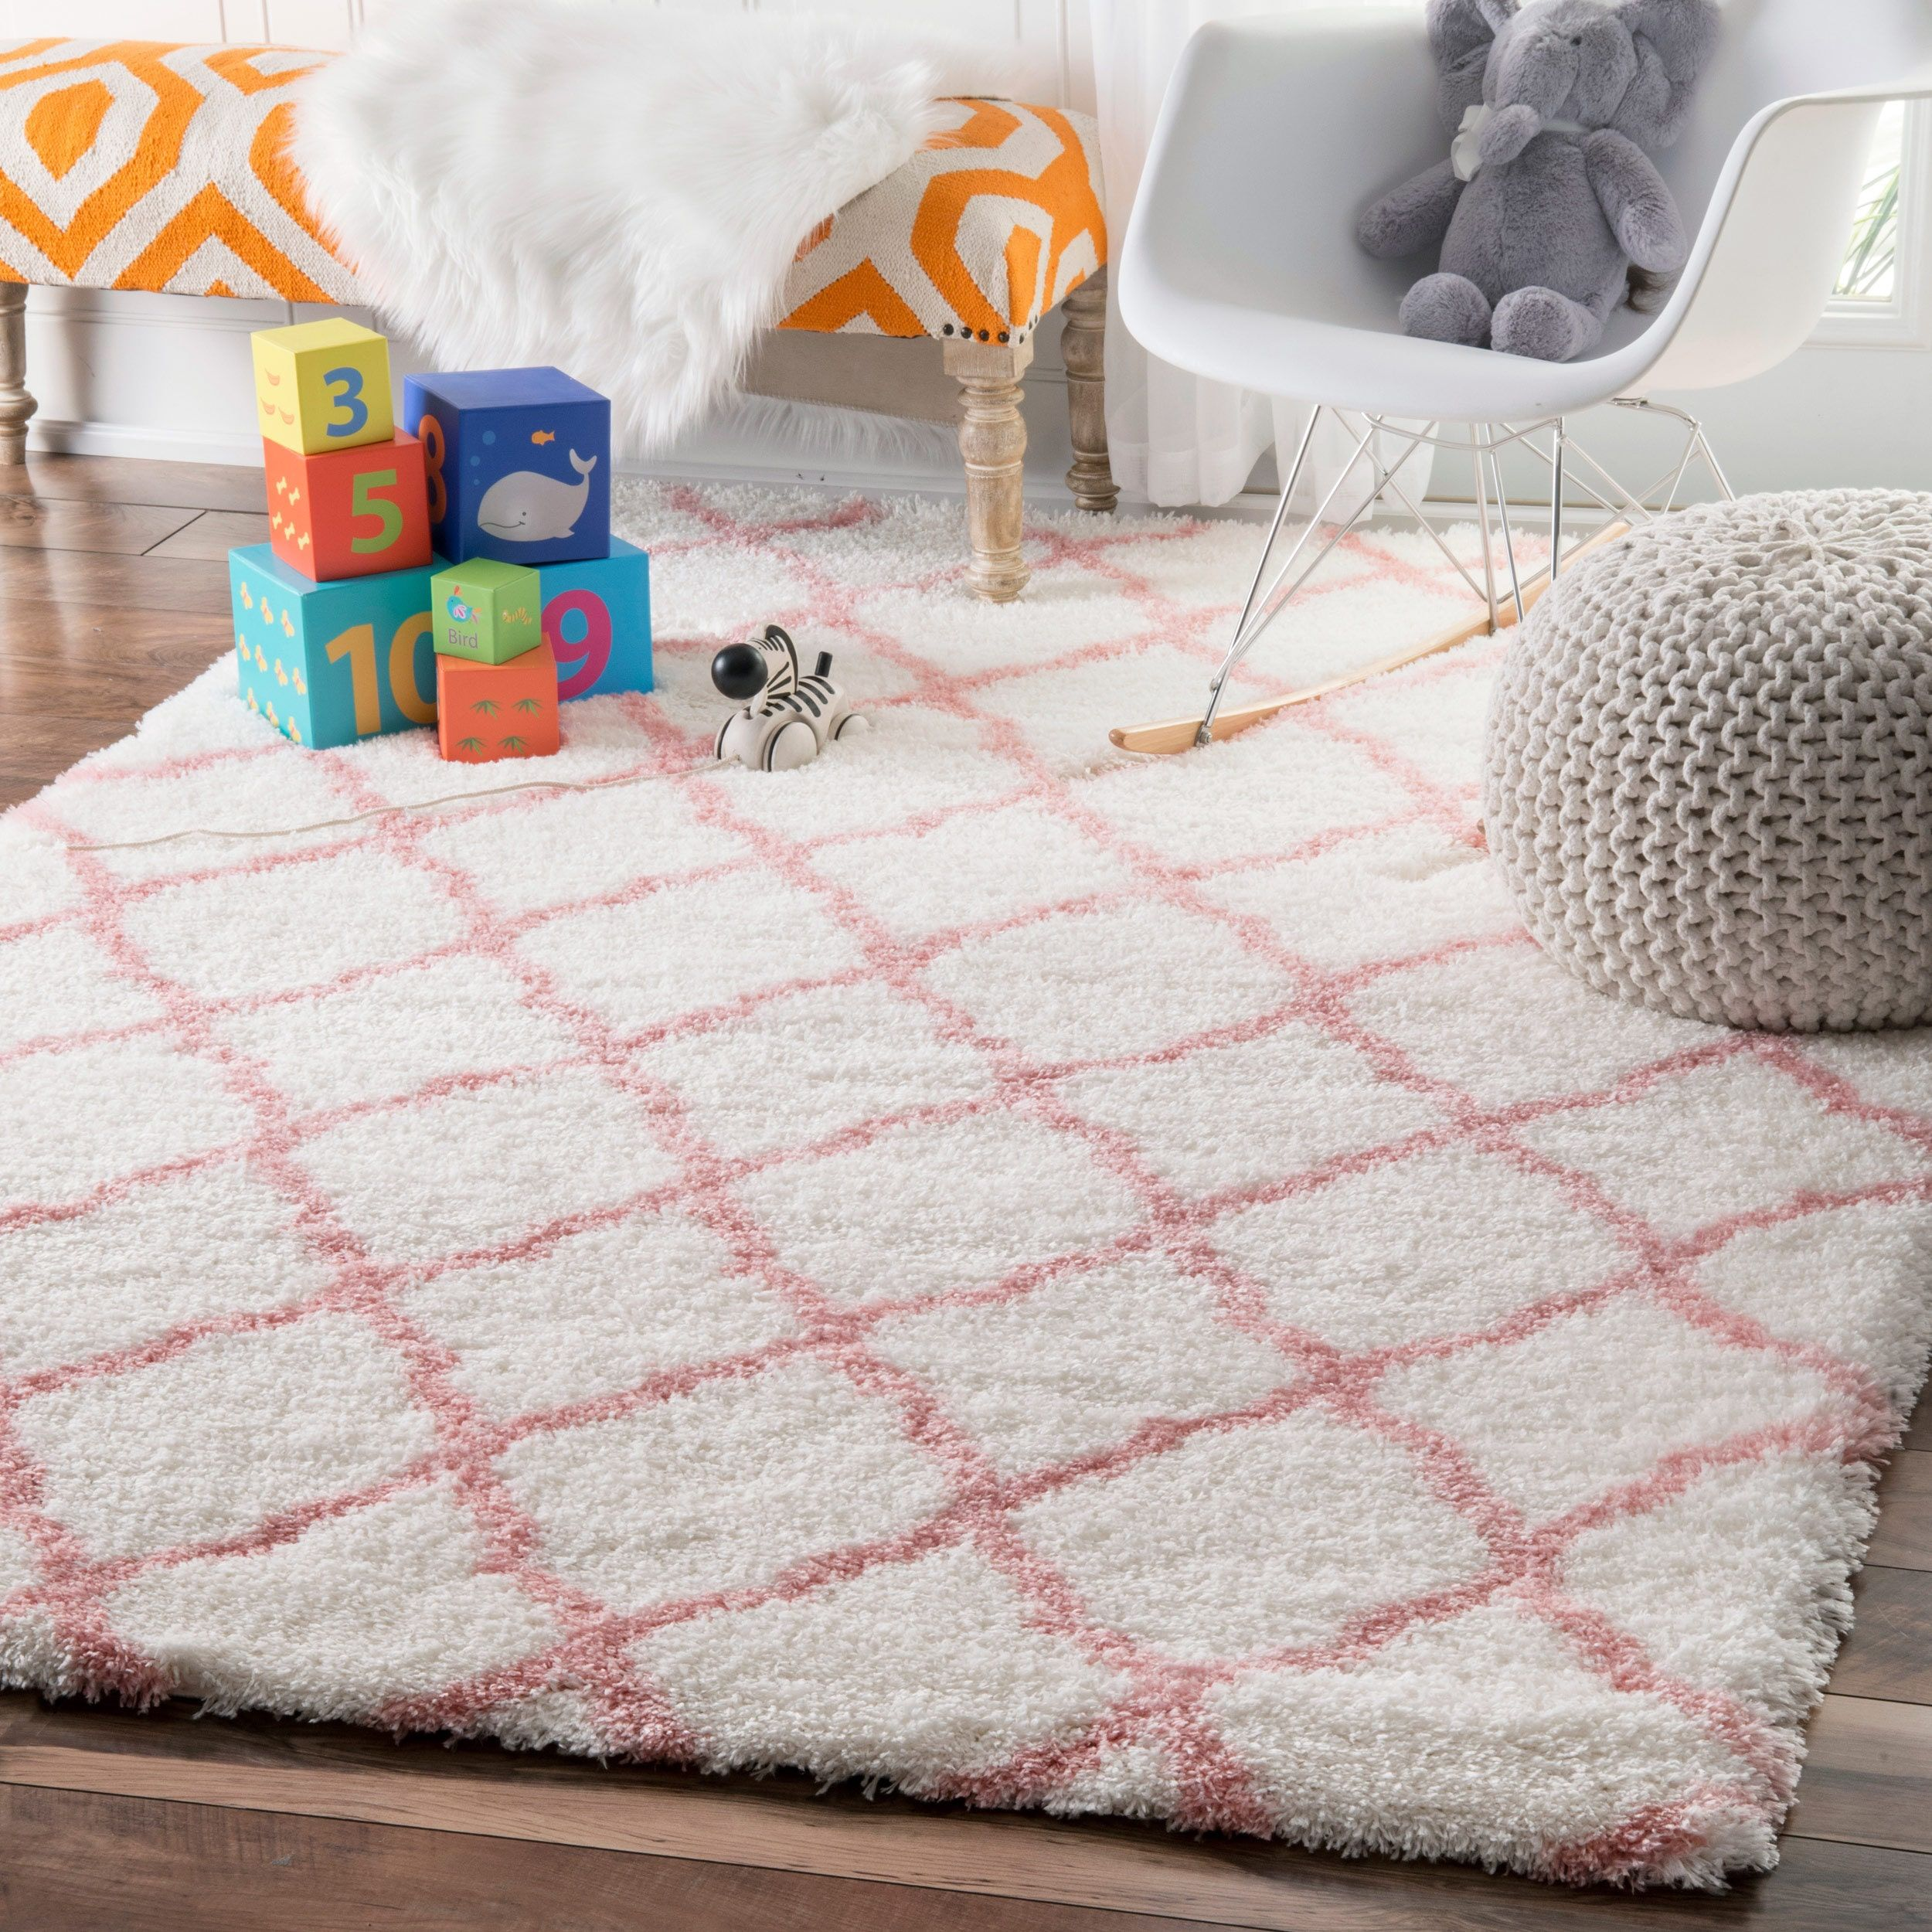 Pink White Indoor Area Rugs Free Shipping On Orders Over 45 Find